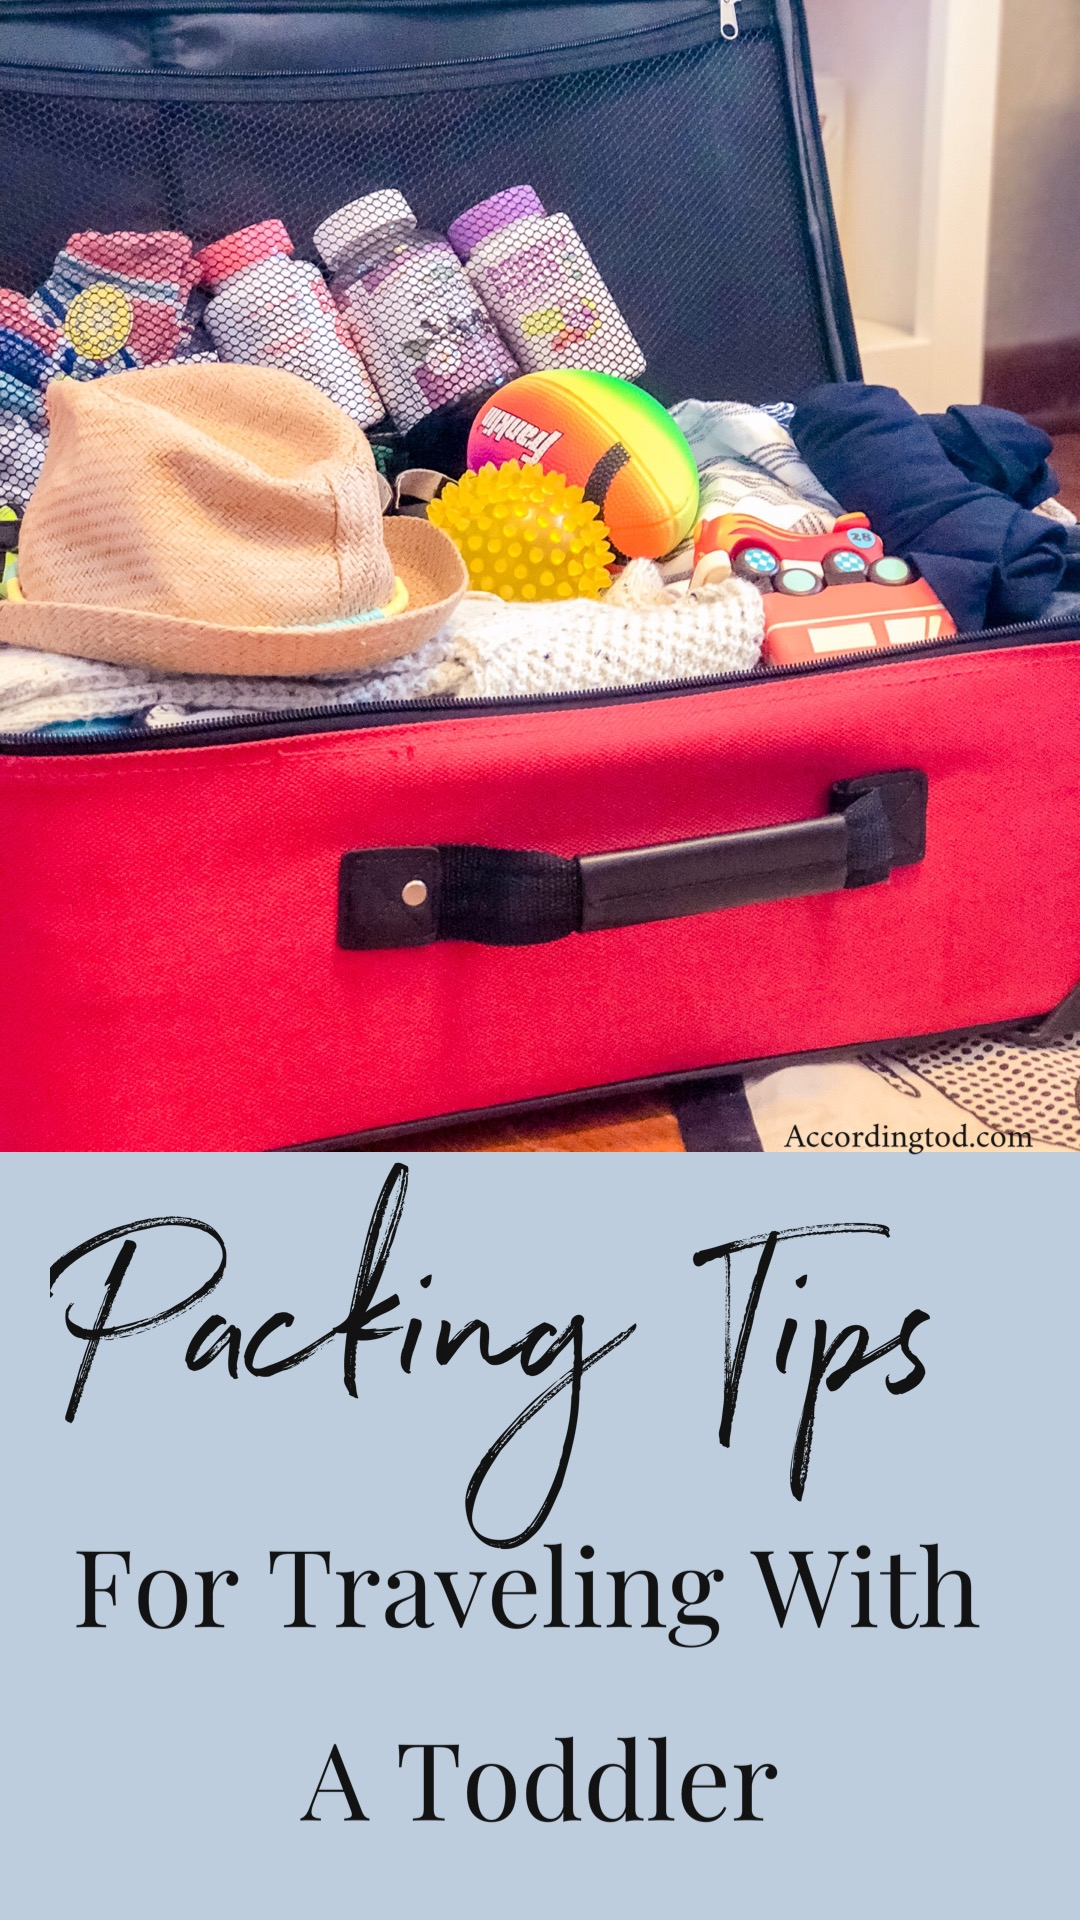 packing tips for traveling with a toddler